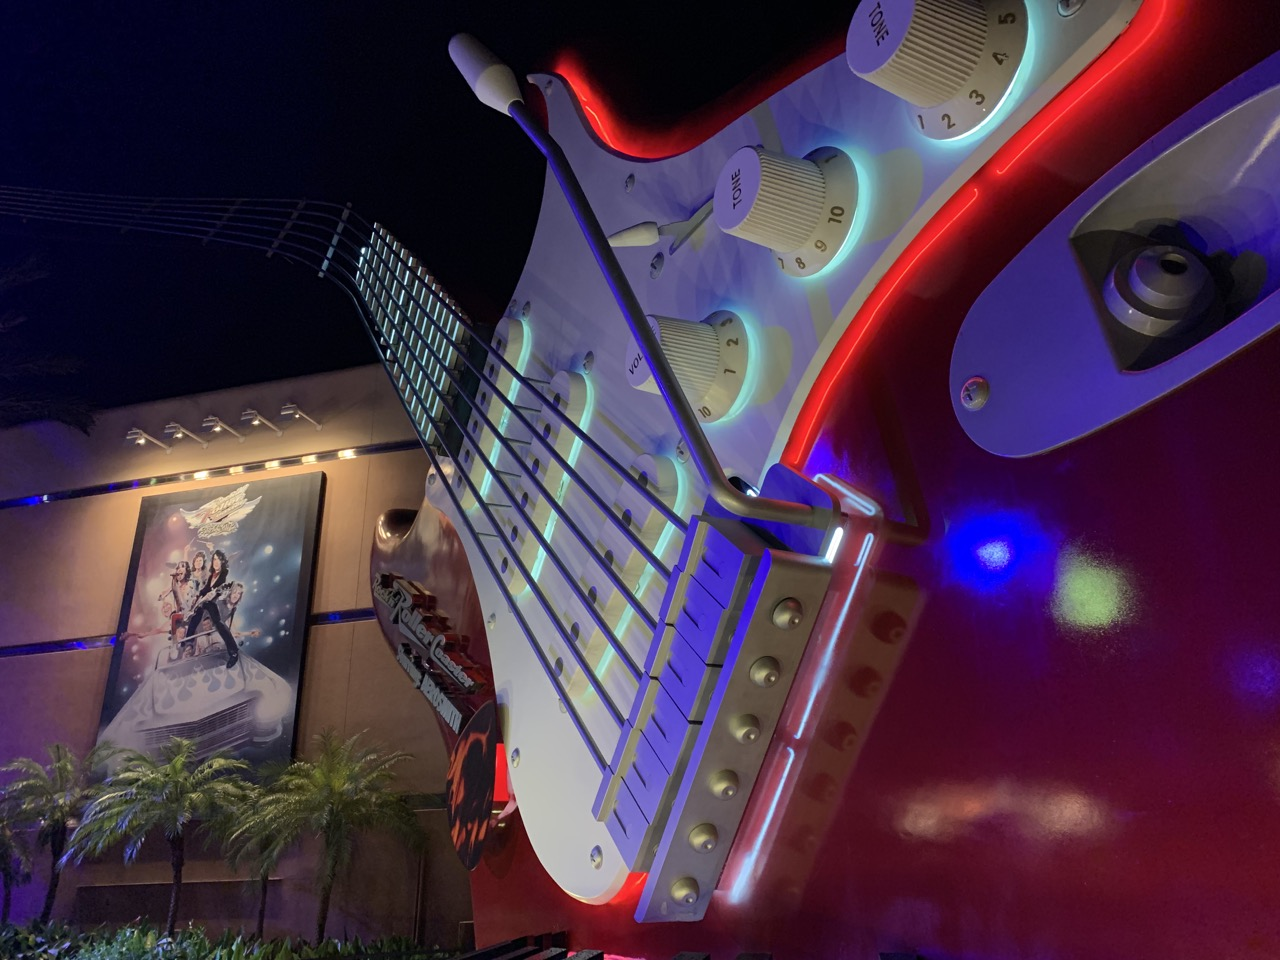 disney world hollywood studios rides and shows rock n roller coaster.jpeg